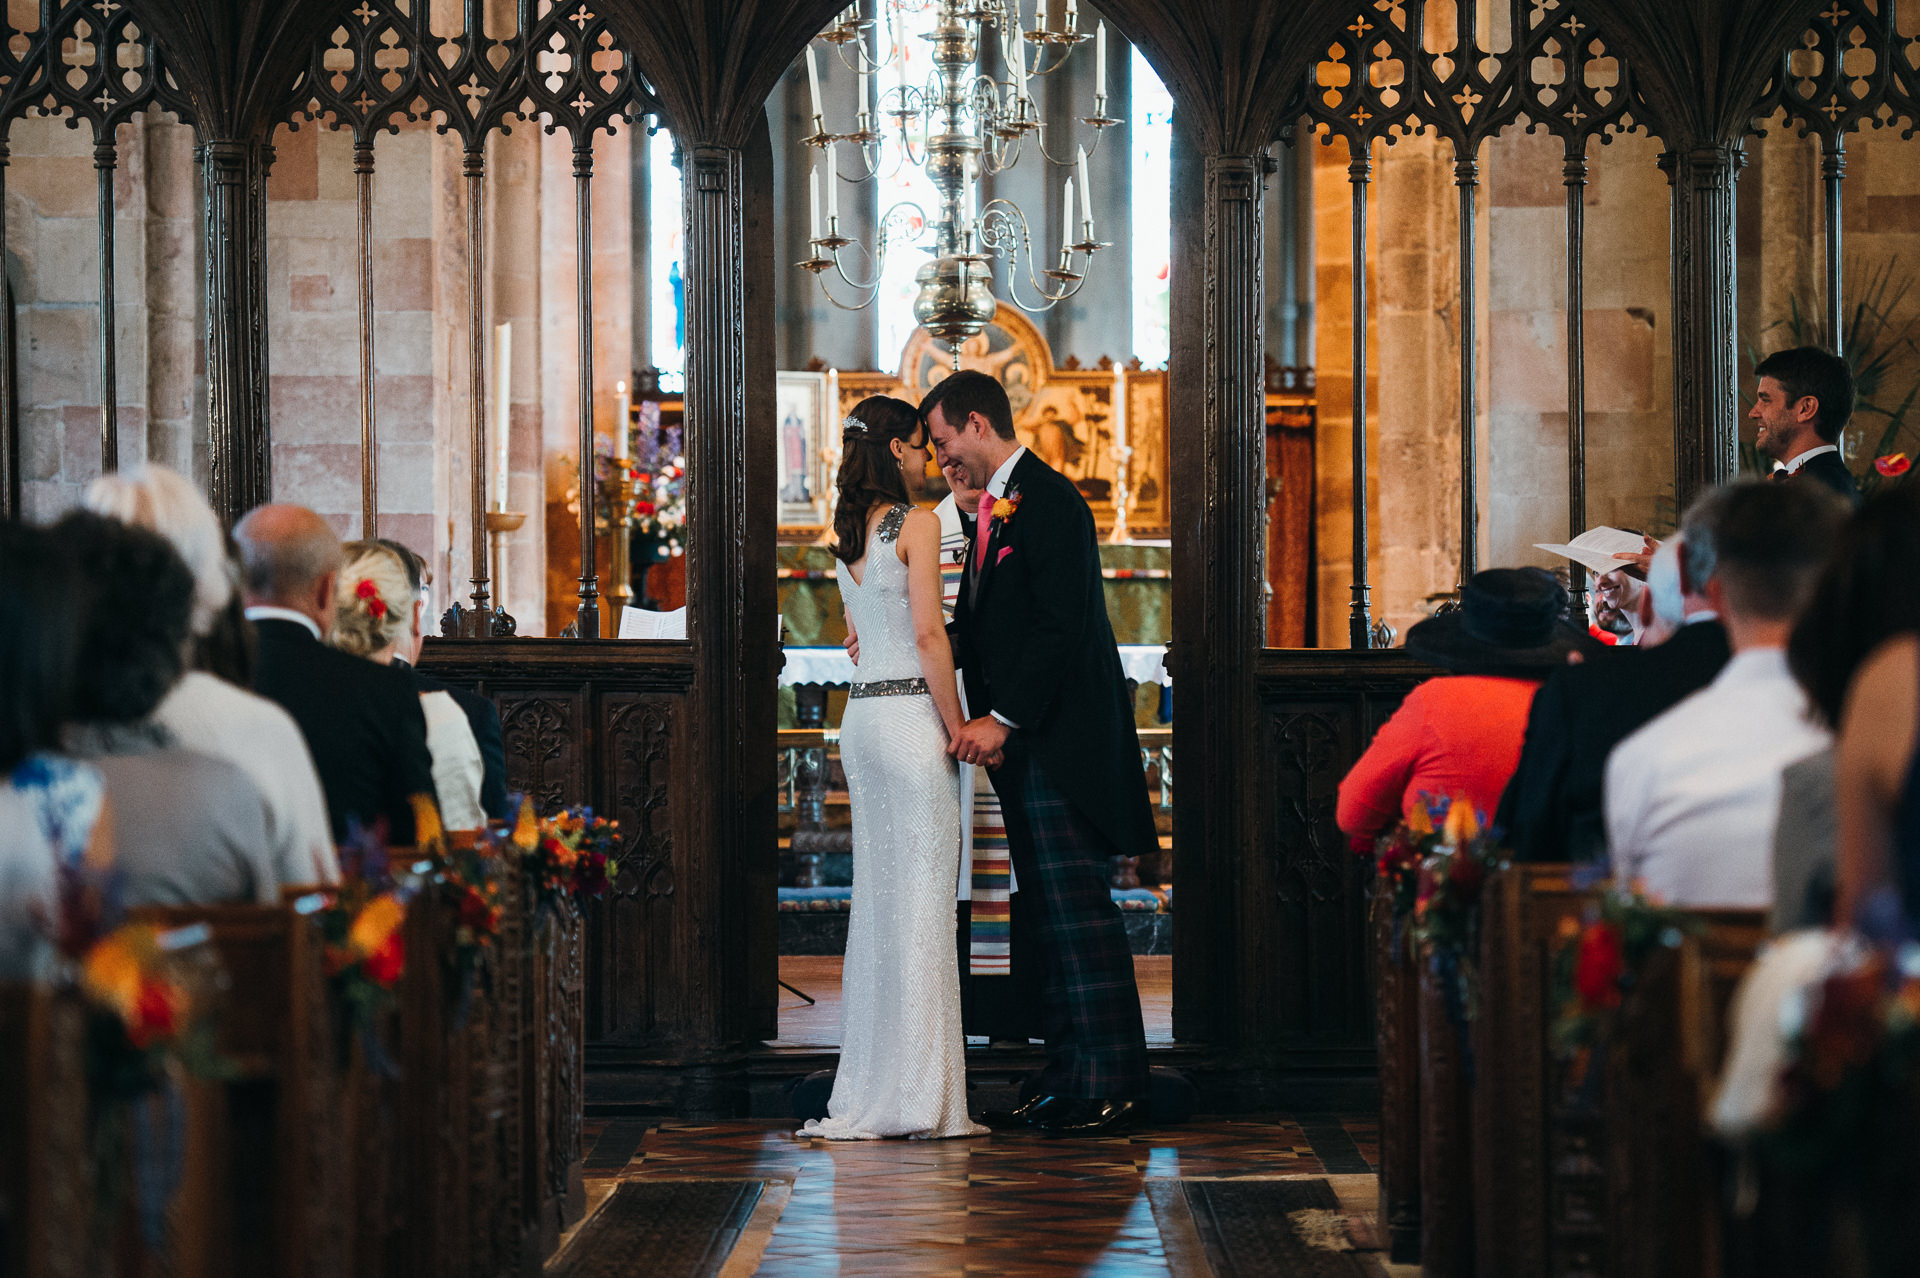 Dunster church wedding ceremony kiss